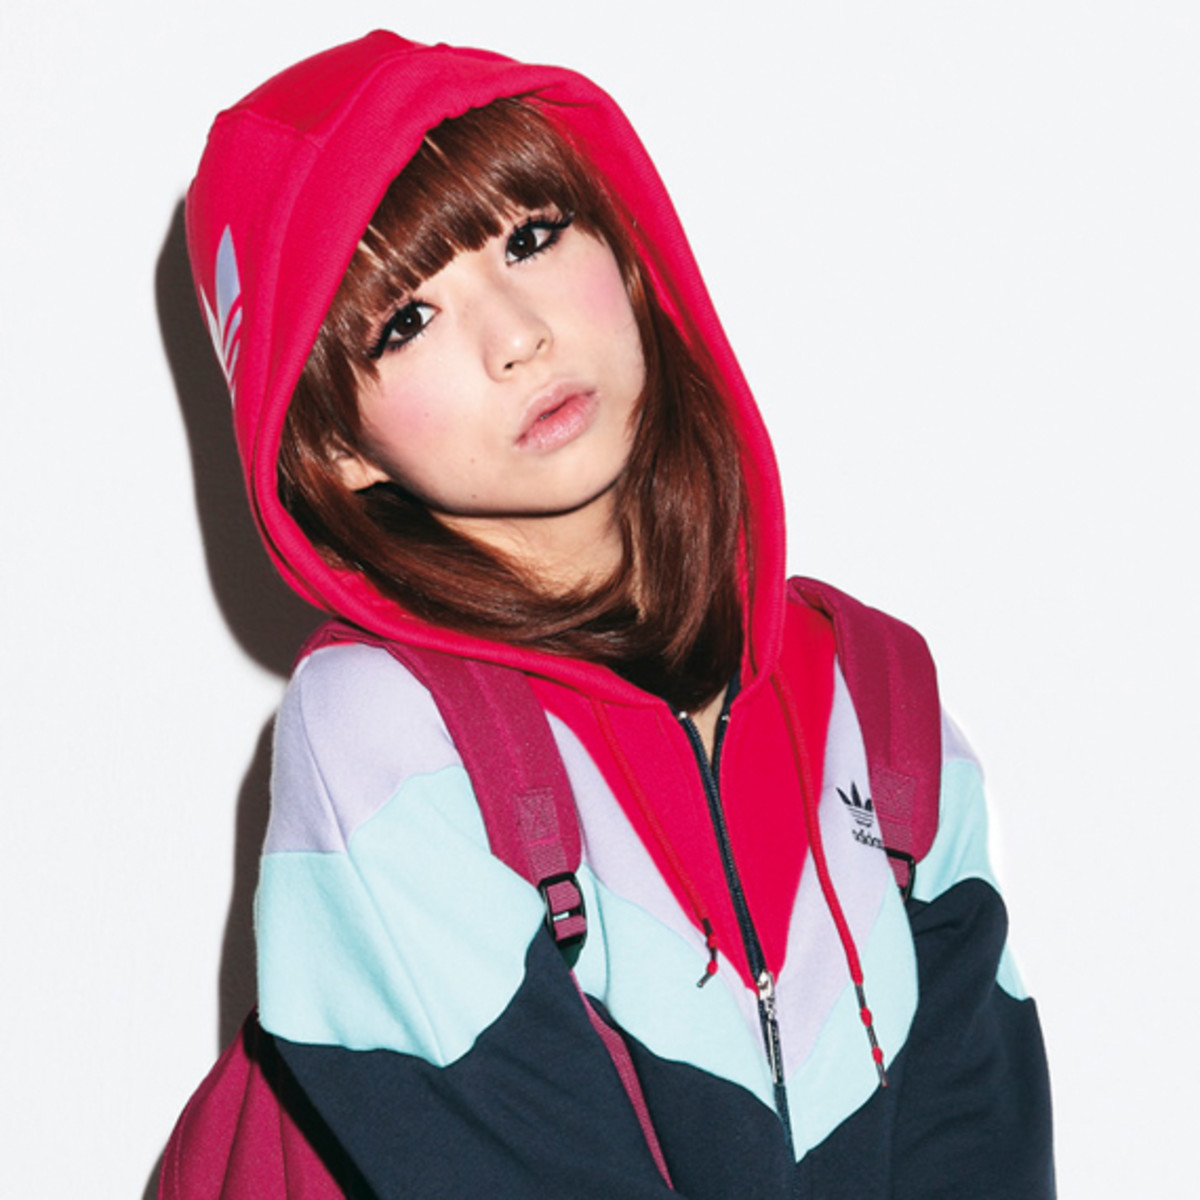 adidas-originals-japan-women-2010-lookbook-01